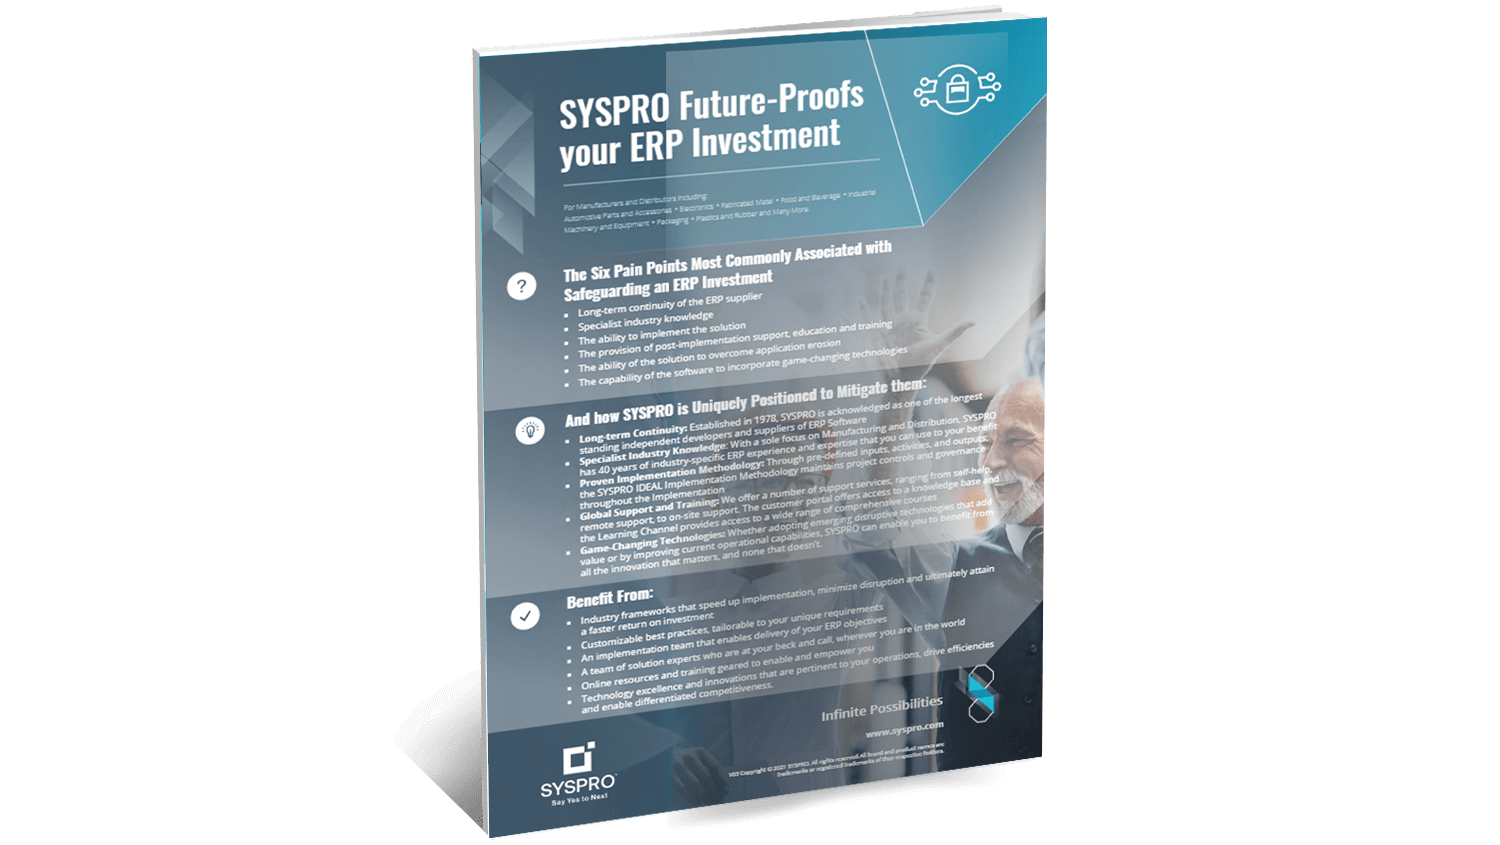 SYSPRO-ERP-software-system-safeguard-your-erp-infographic